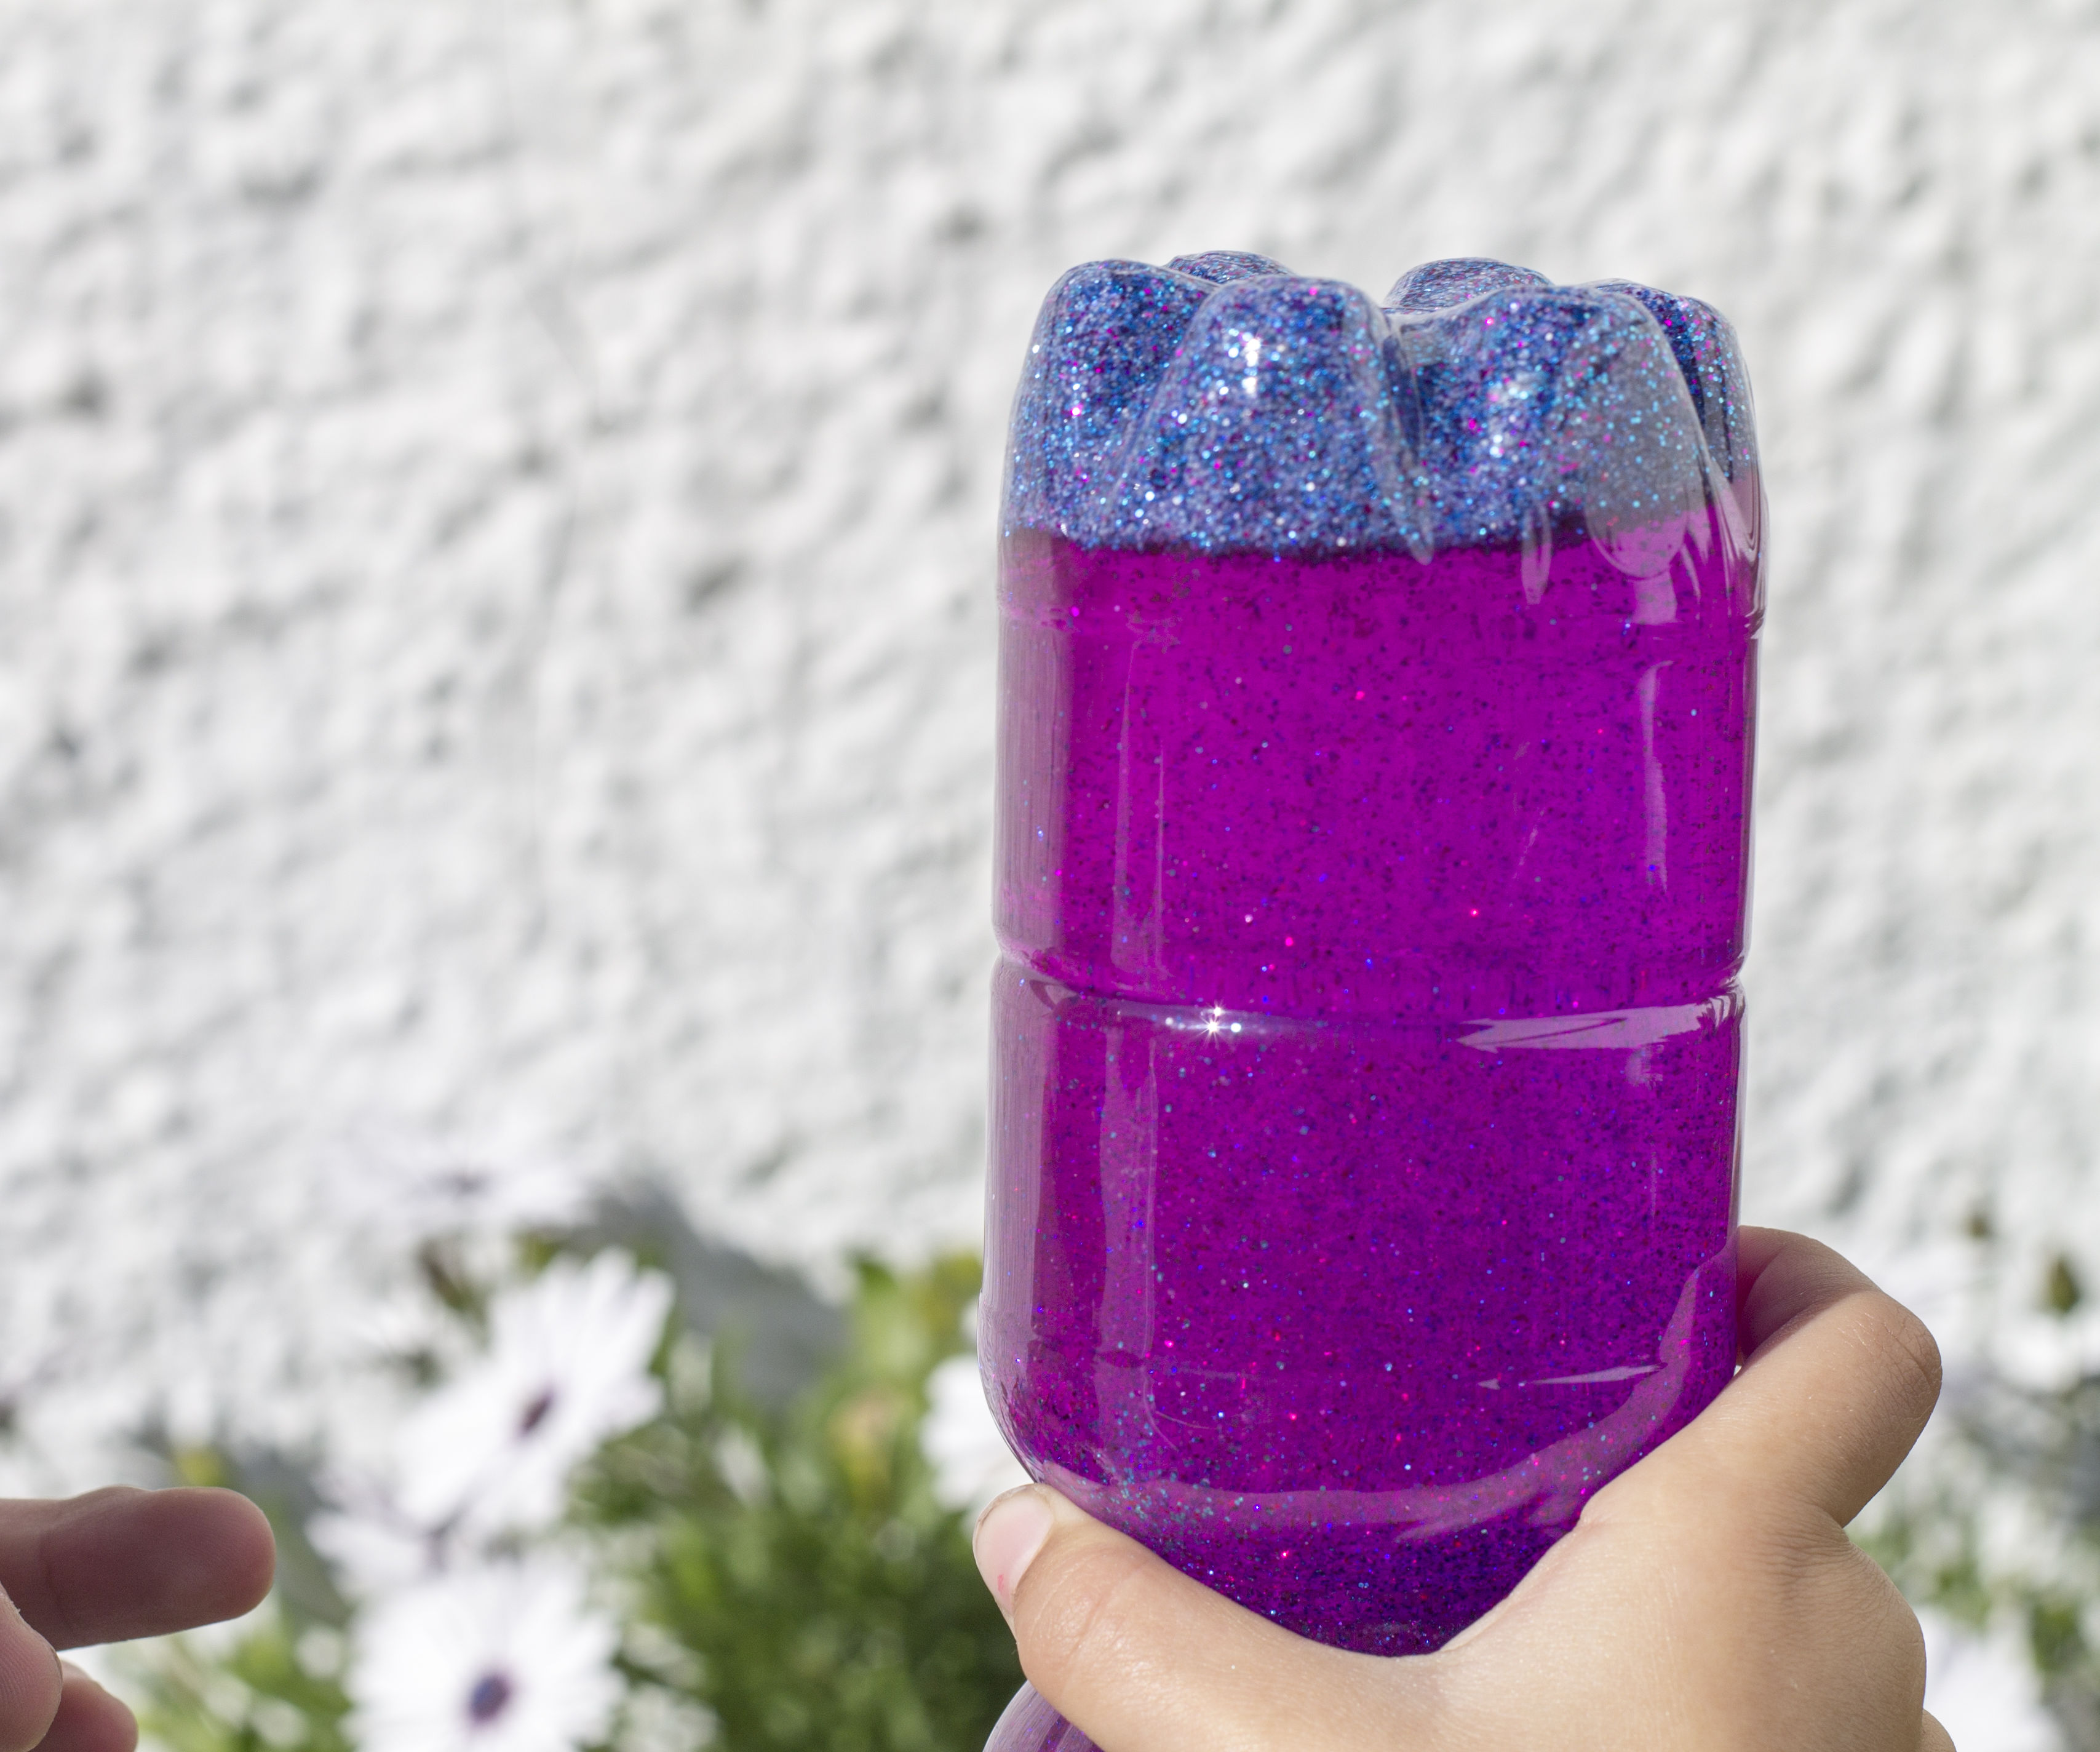 How to Make Calming Glitter Bottle